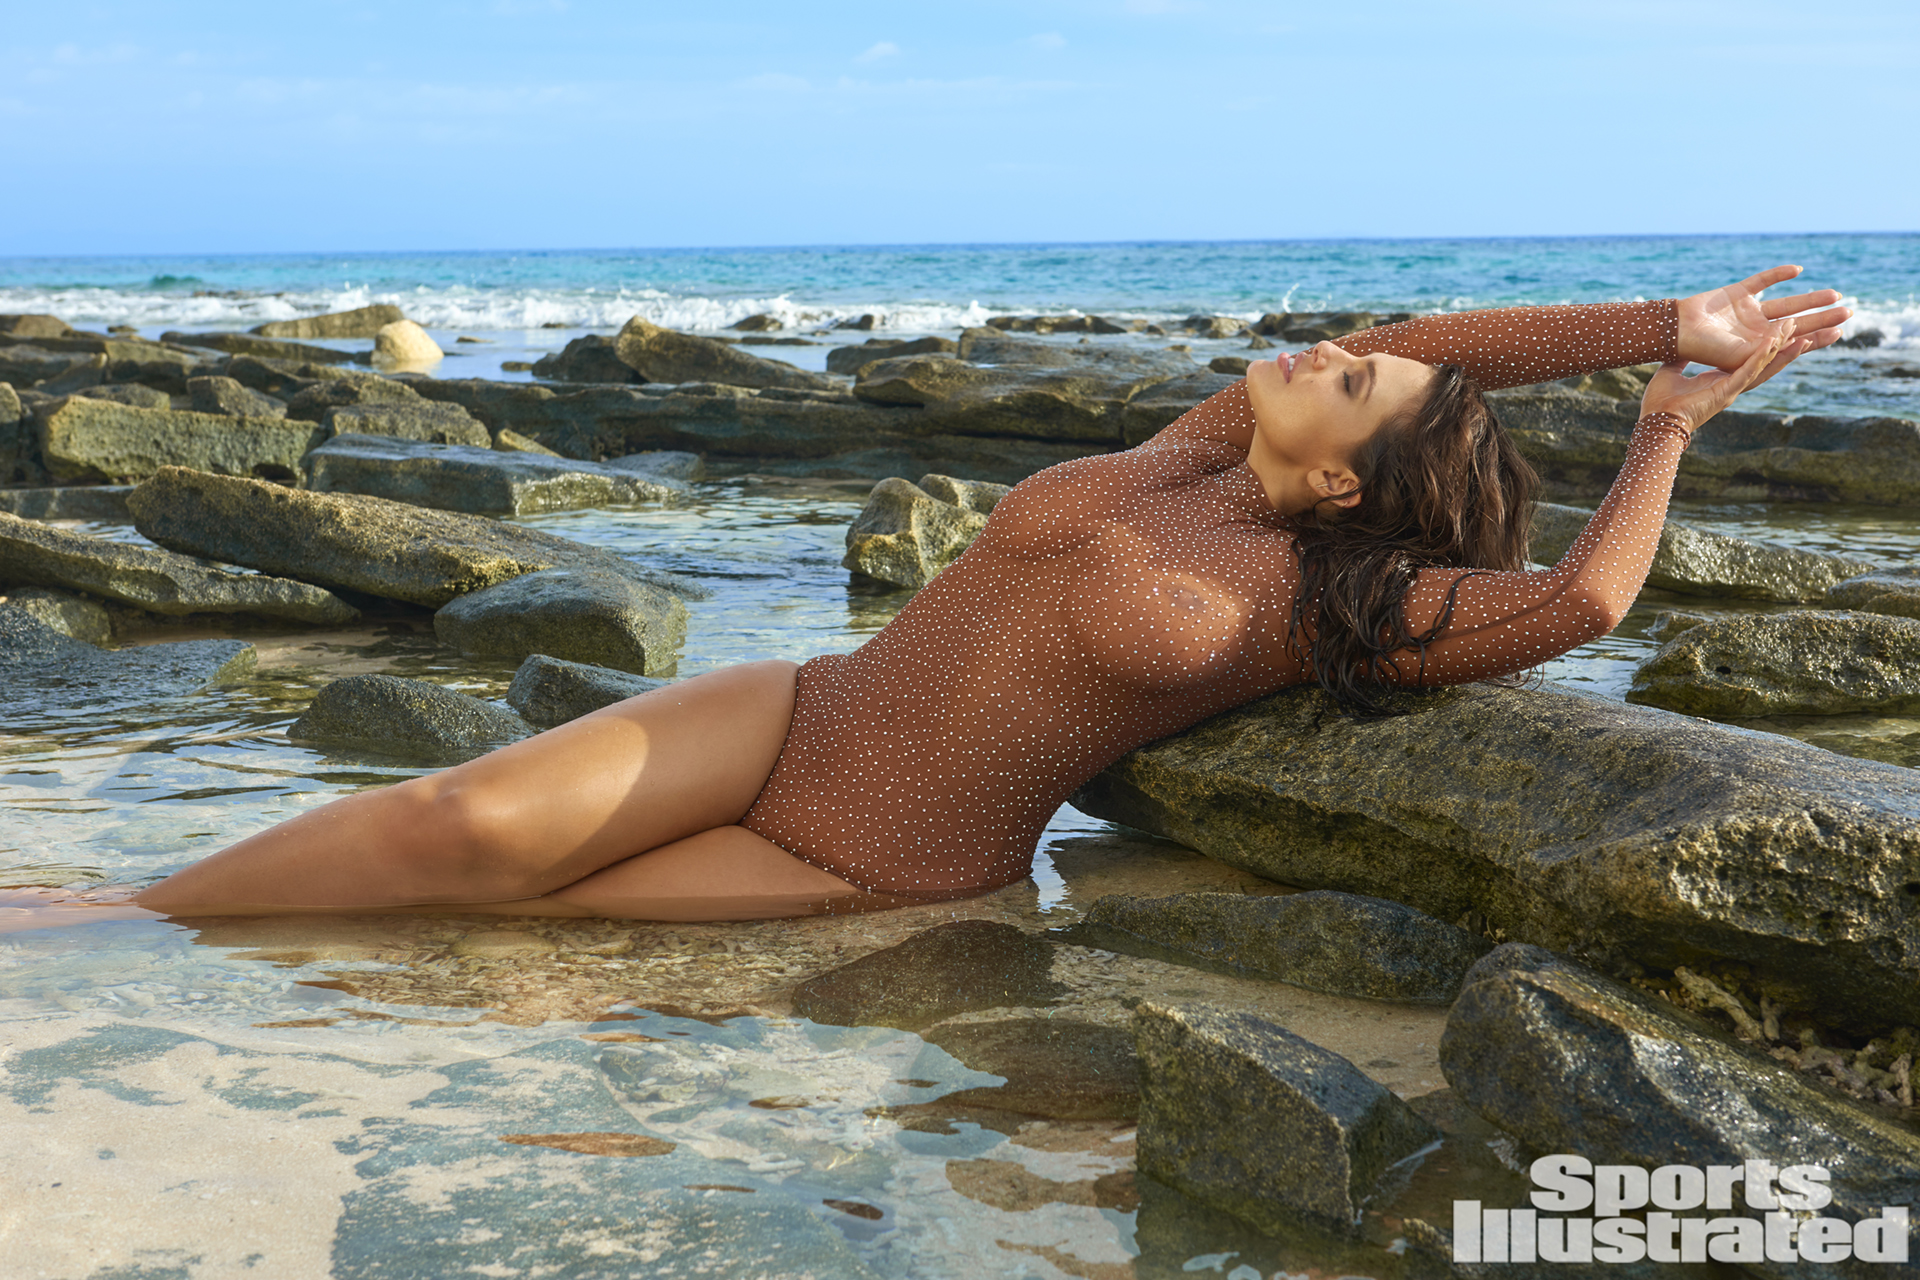 Ashley Graham for Sports Illustrated Swimsuit Edition 2017